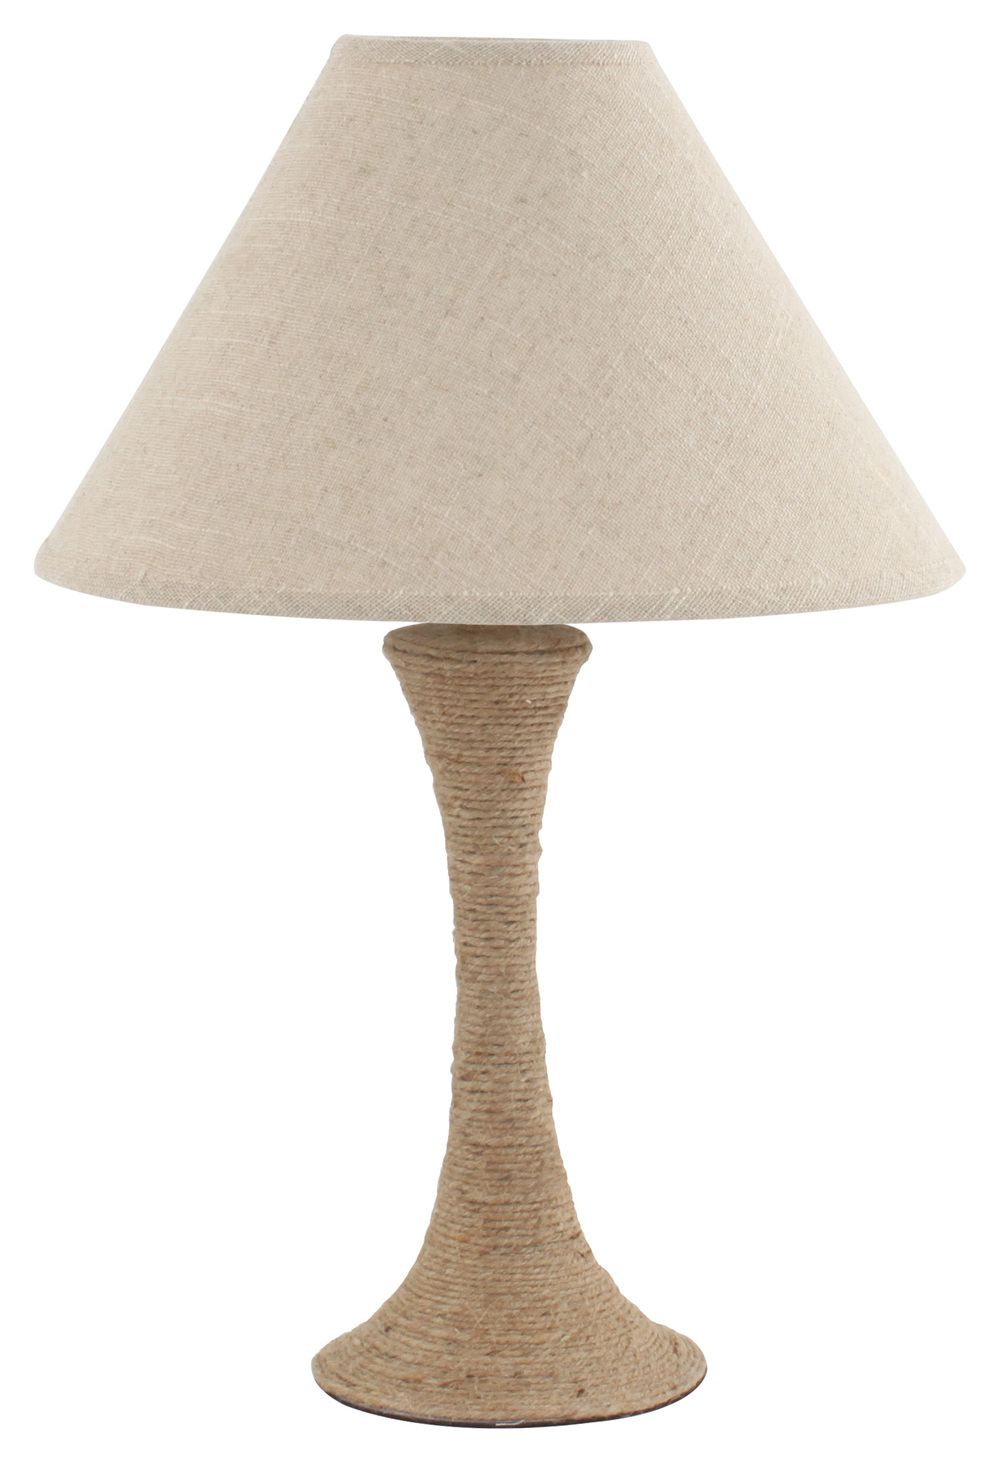 €62 CERAMIC TABLE LAMP W/ROPE COVER IN BEIGE W/FABRIC SHADE 35X59 (POLYESTER)